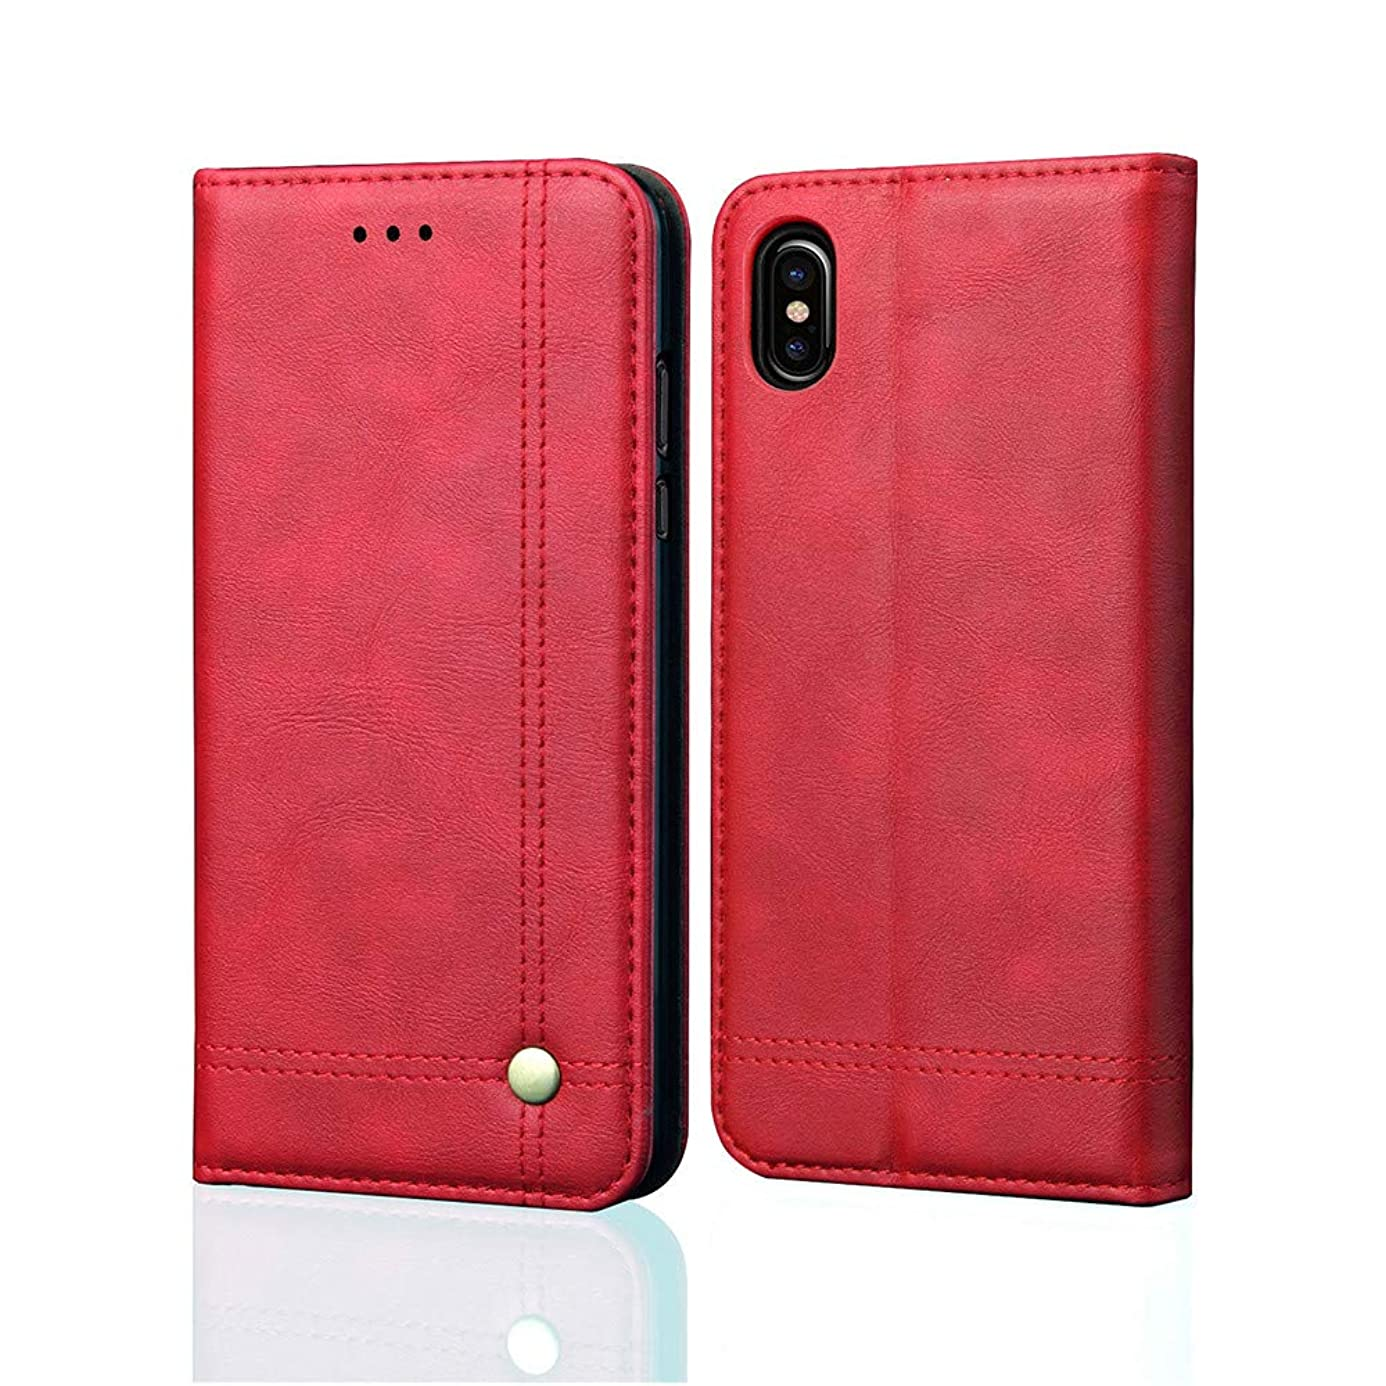 Sinwo Leather Slot Wallet Case Stand Flip Cover Skin Case for Apple iPhone XS Max 6.5inch